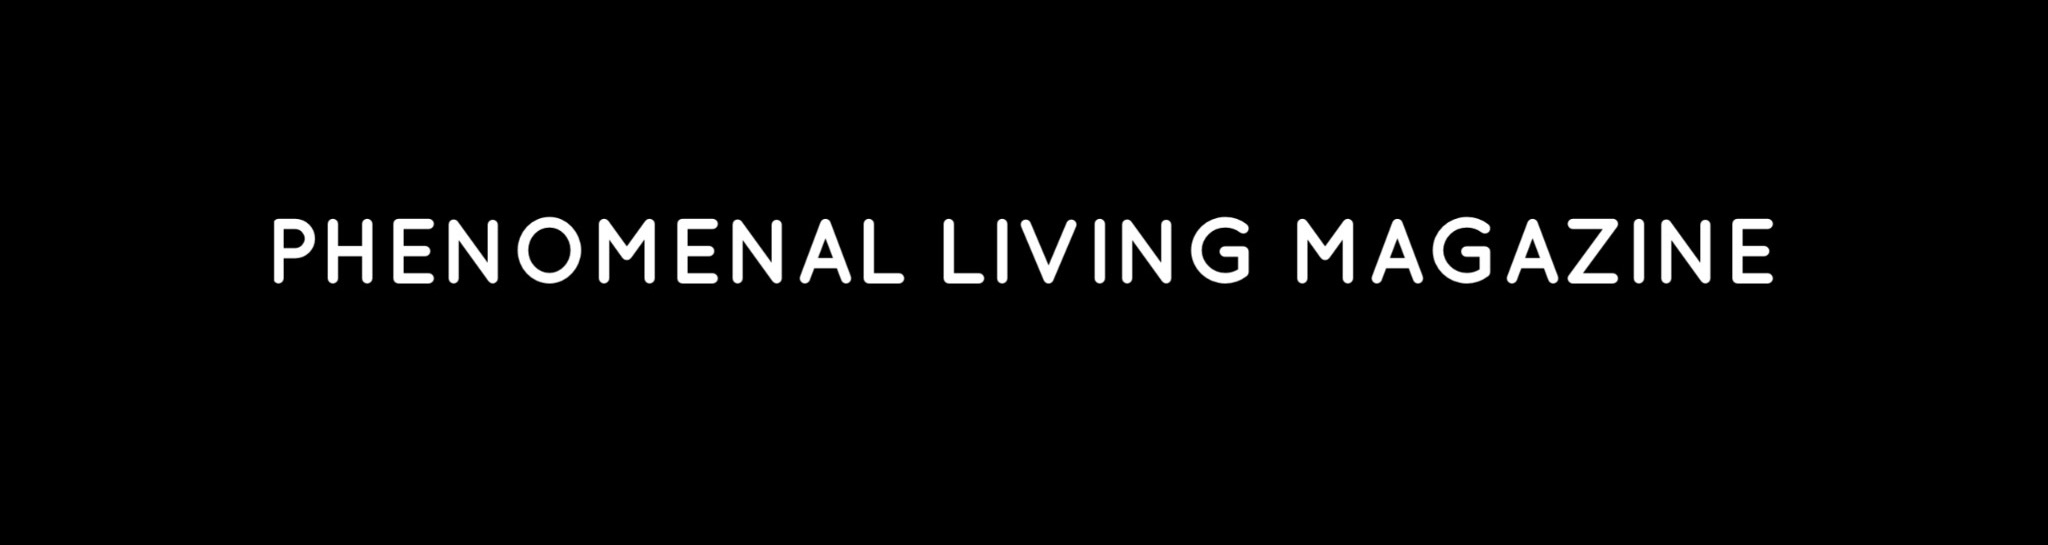 Phenomenal Living, an international lifestyle resource that focuses on fashion, beauty, health, travel, culture and entertainment. Our aim is to share lifestyle and product recommendations that help you live a phenomenal life.  We focus on the philosophy of living a life that serves, therefore celebrating each other, supporting charity and motivating across the board, is absolutely at the heart of everything we do. Phenomenal Living is designed to quickly and effortlessly help you discover what you need. No fuss, no frills, just a little black book of Phenomenalisation.